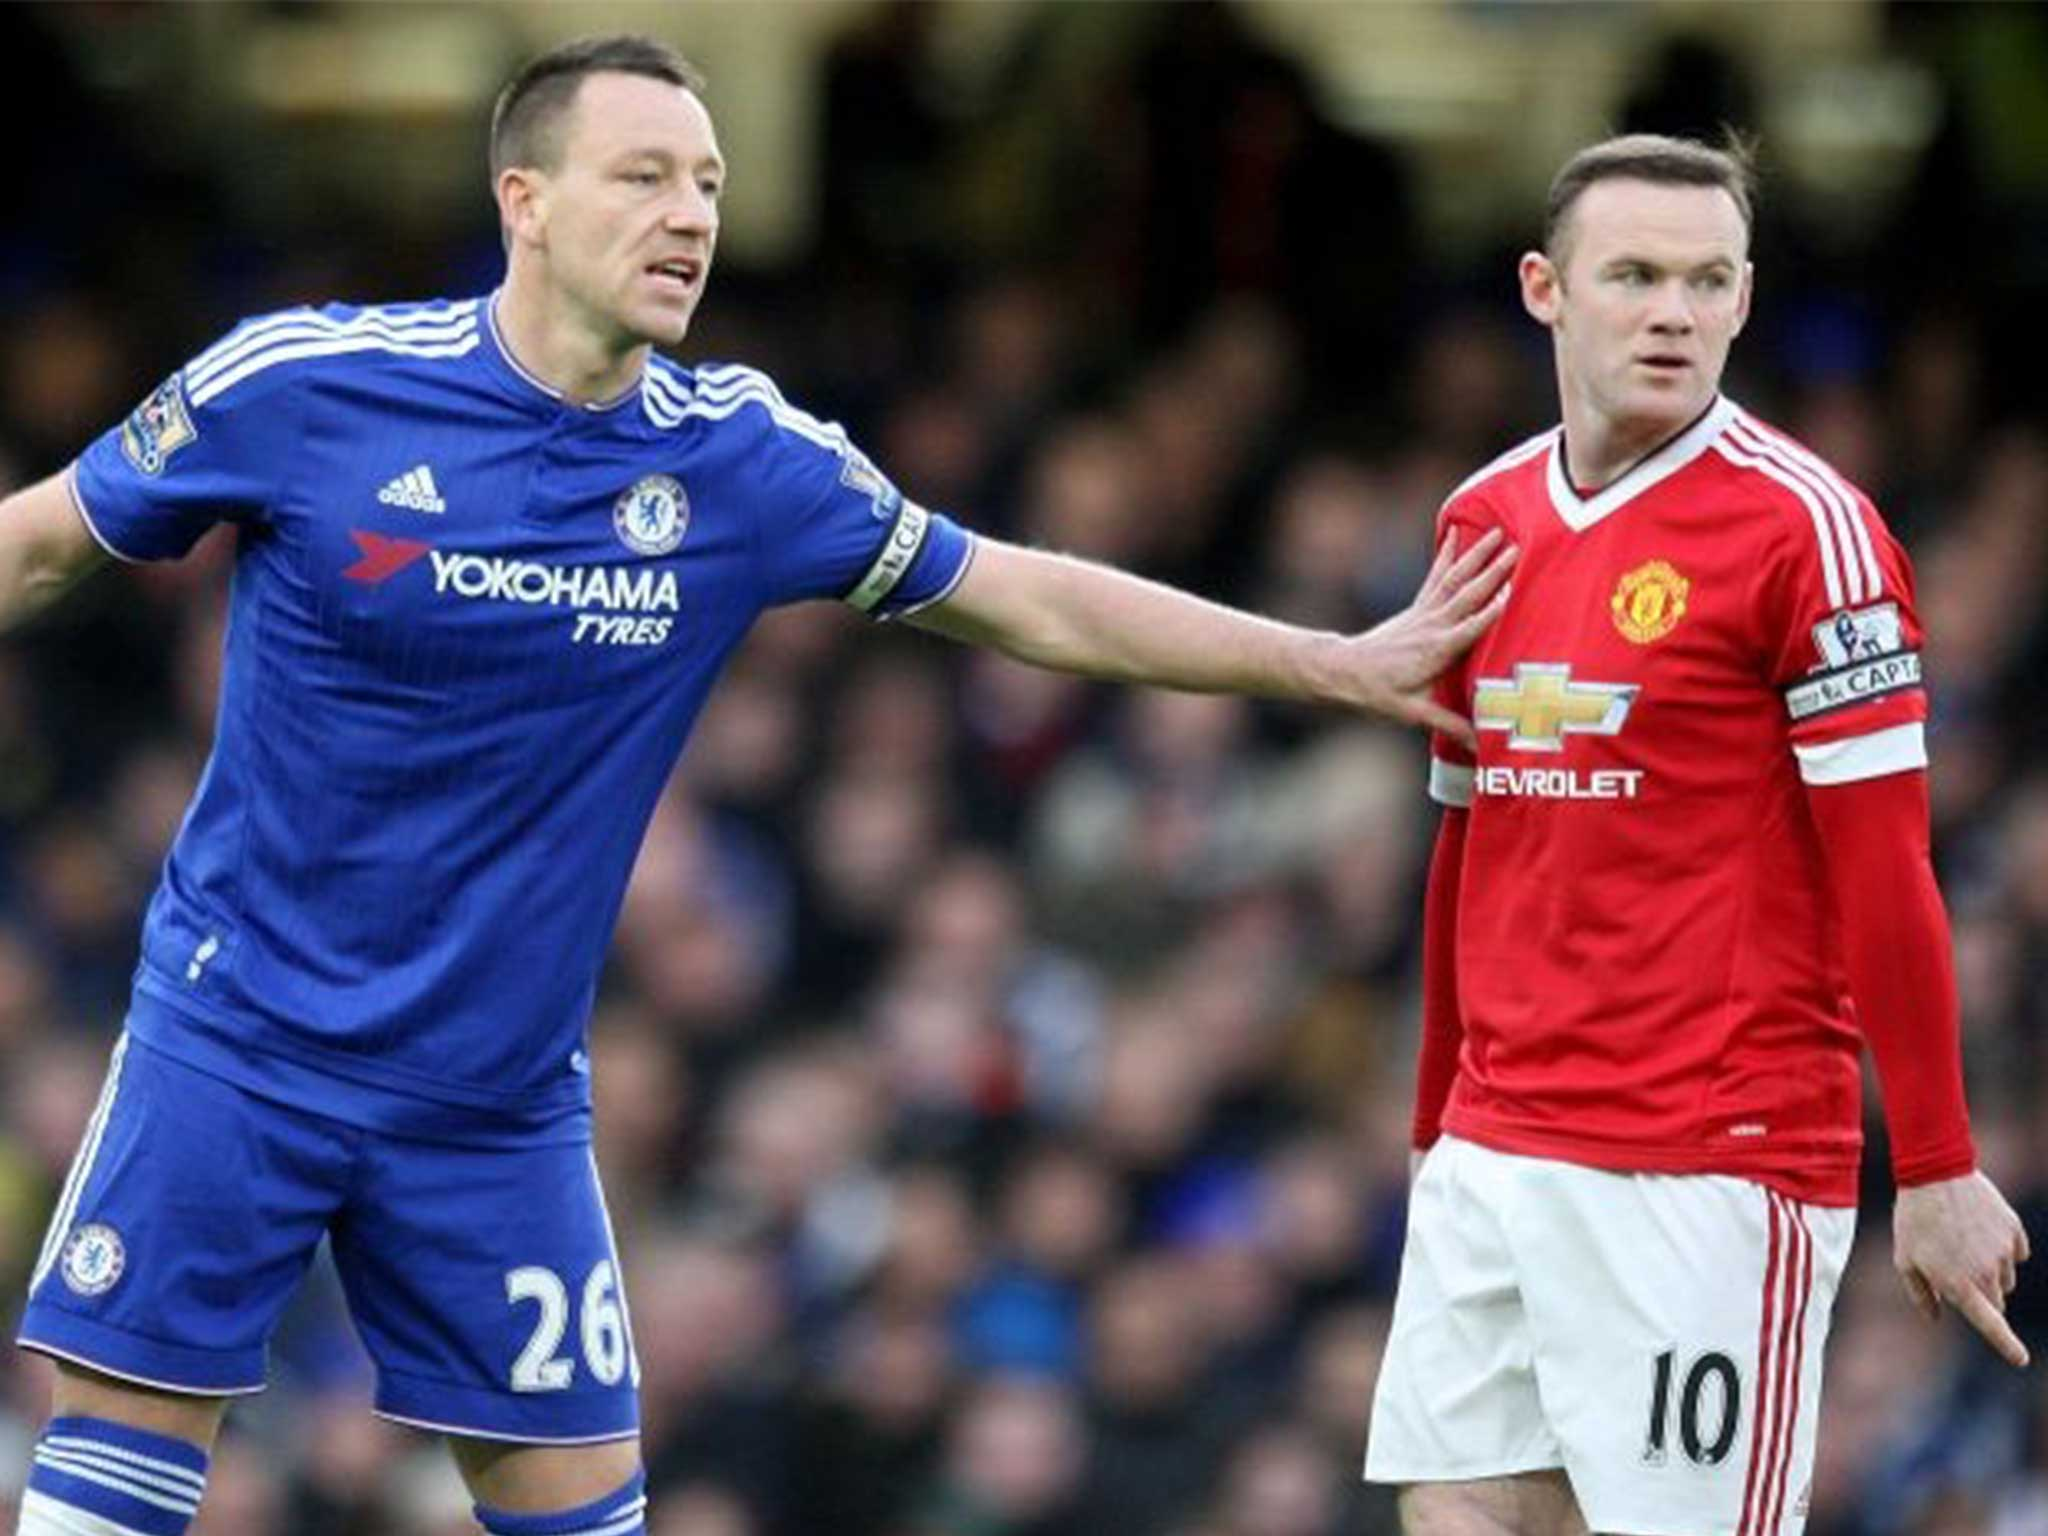 Chelsea vs Manchester United: Was this the final clash between those great warriors John Terry and Wayne Rooney?